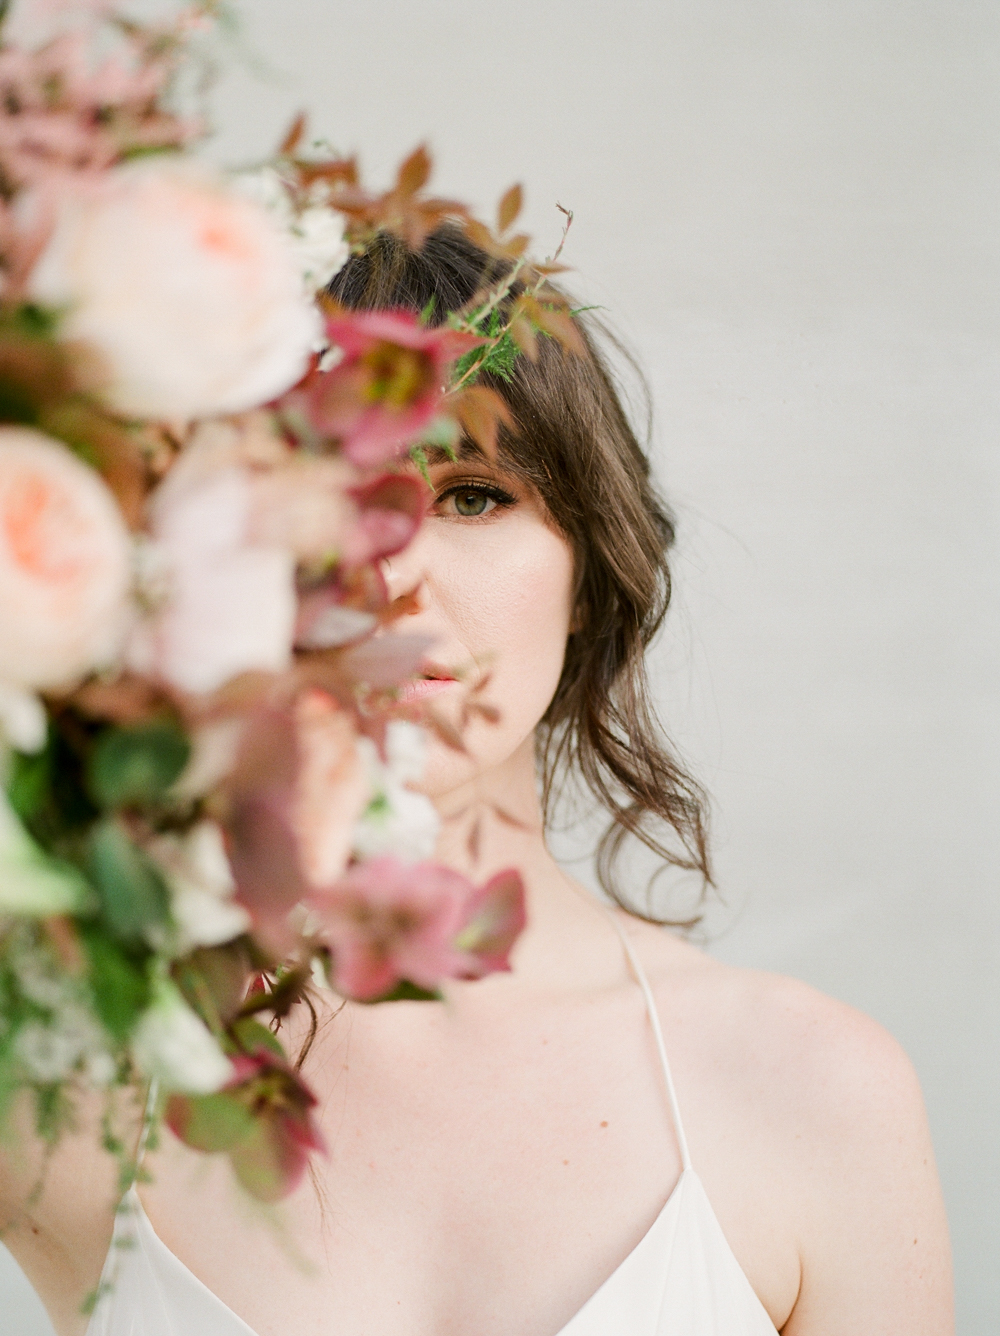 Christine Gosch - destination film photographer - houston wedding photographer - fine art film photographer - elopement photographer - destination wedding - understated wedding - simple beautiful wedding photography-81.jpg